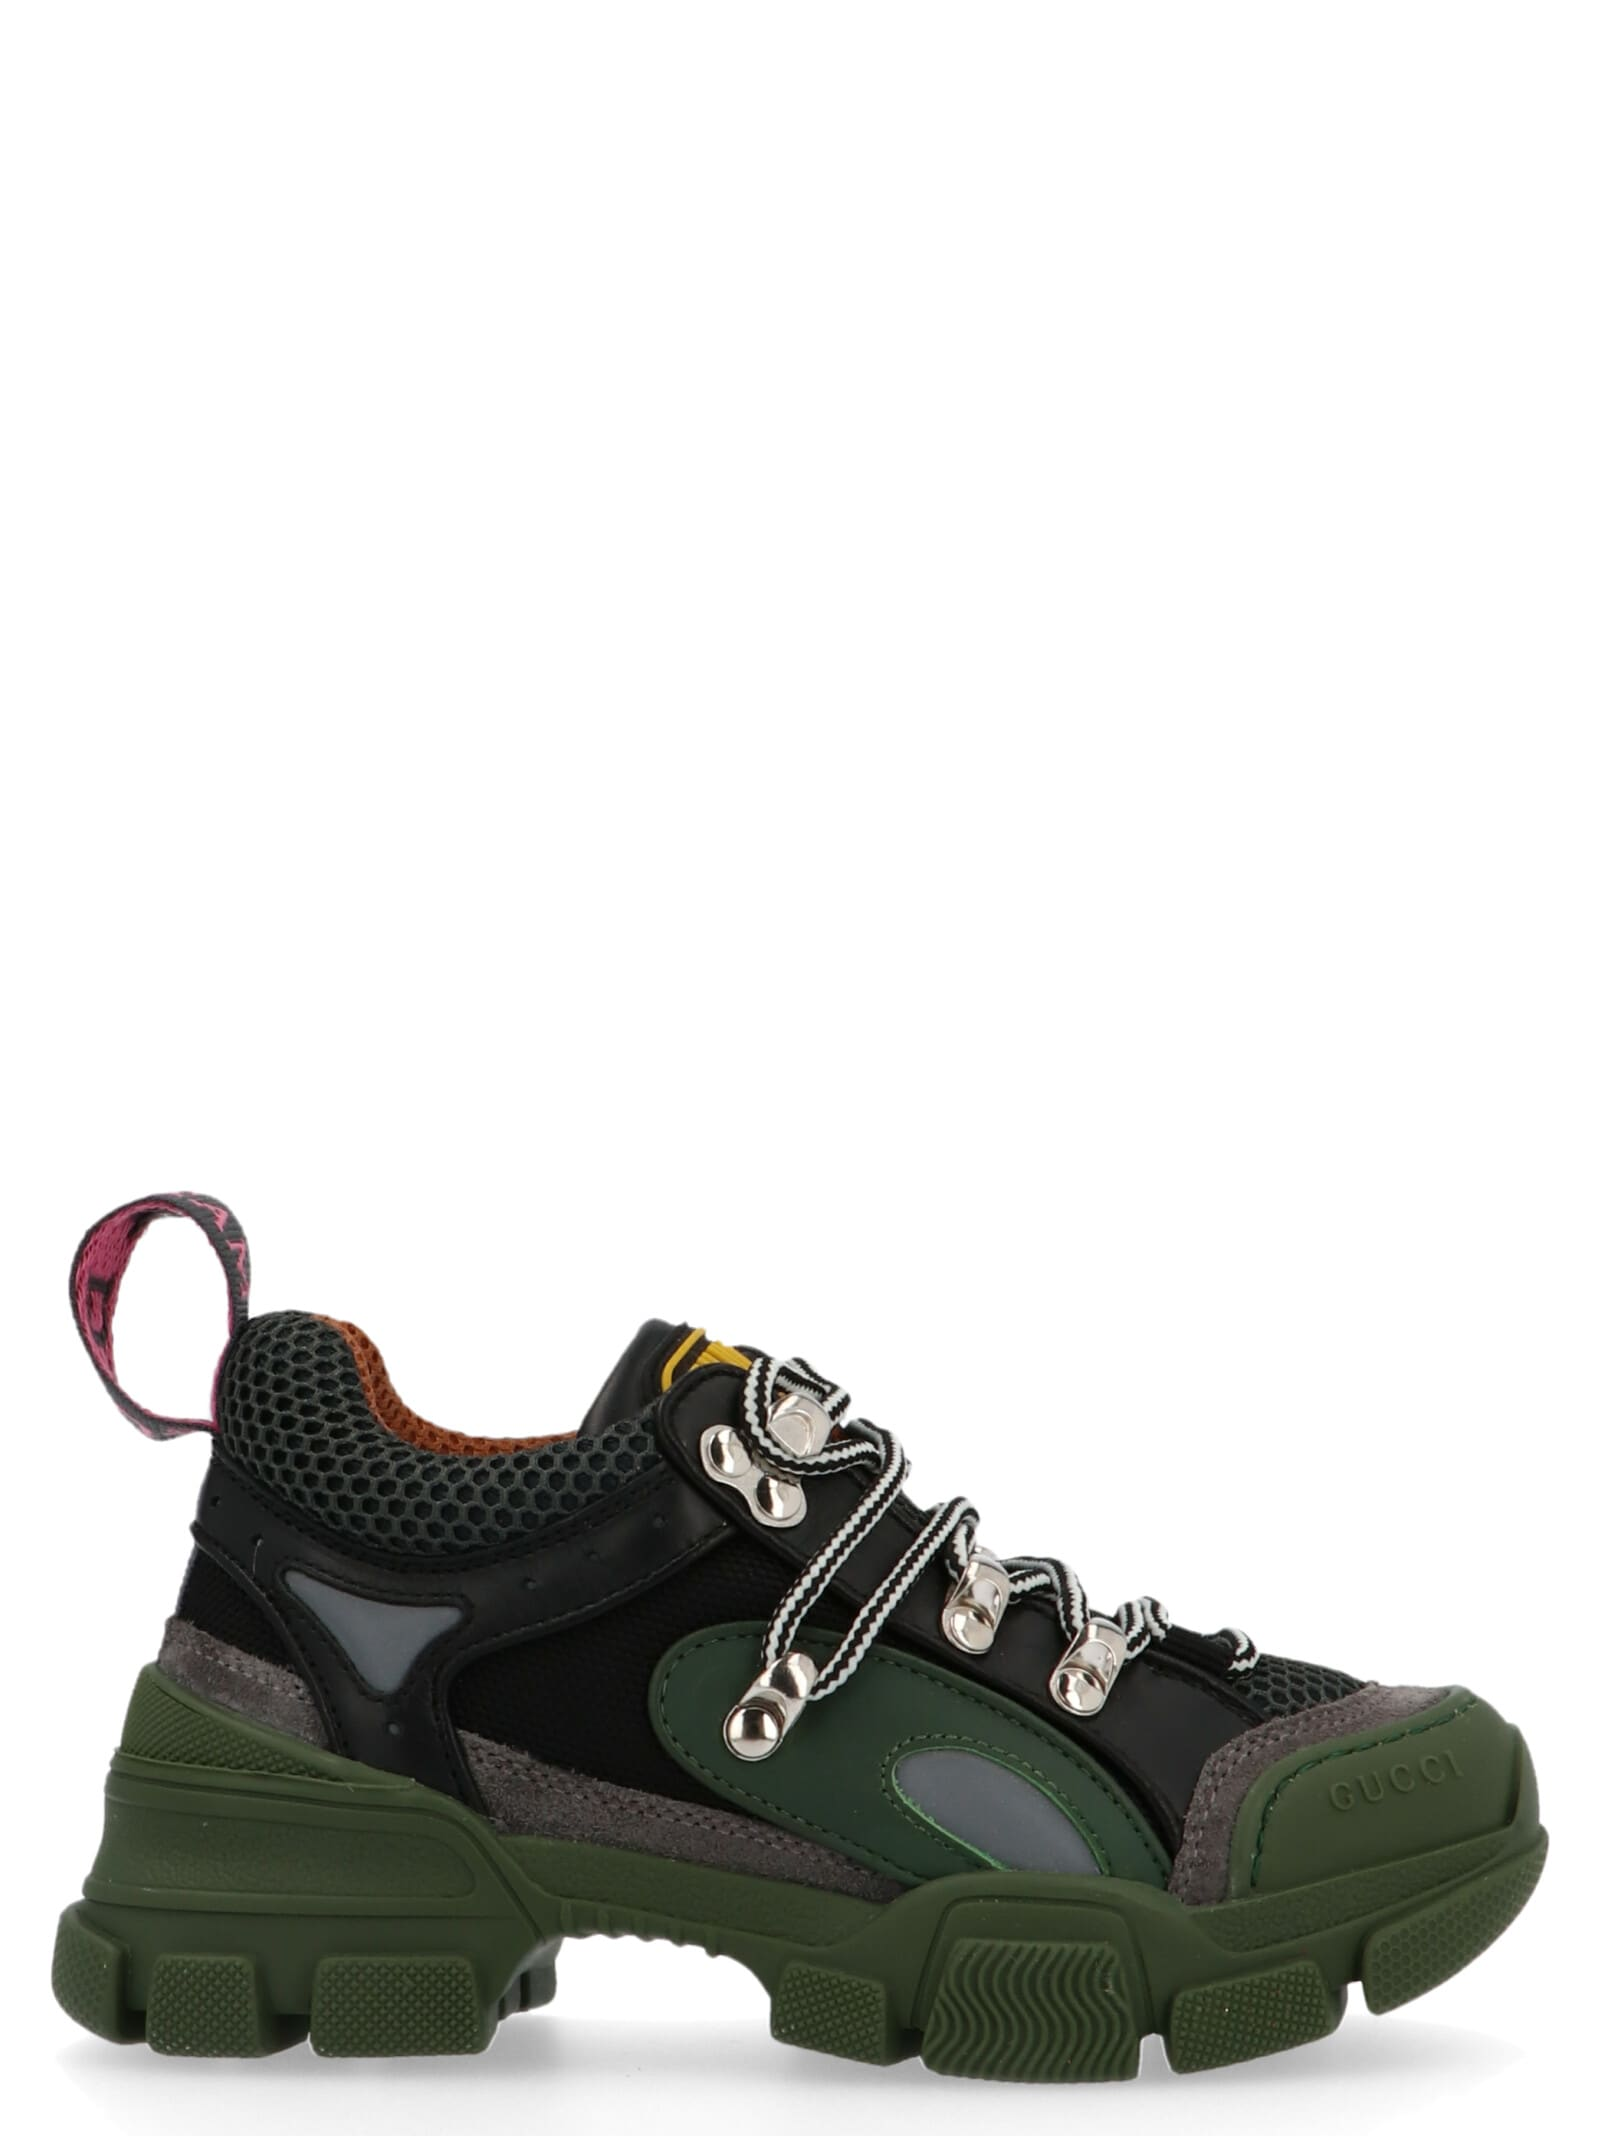 Gucci Shoes | italist, ALWAYS LIKE A SALE